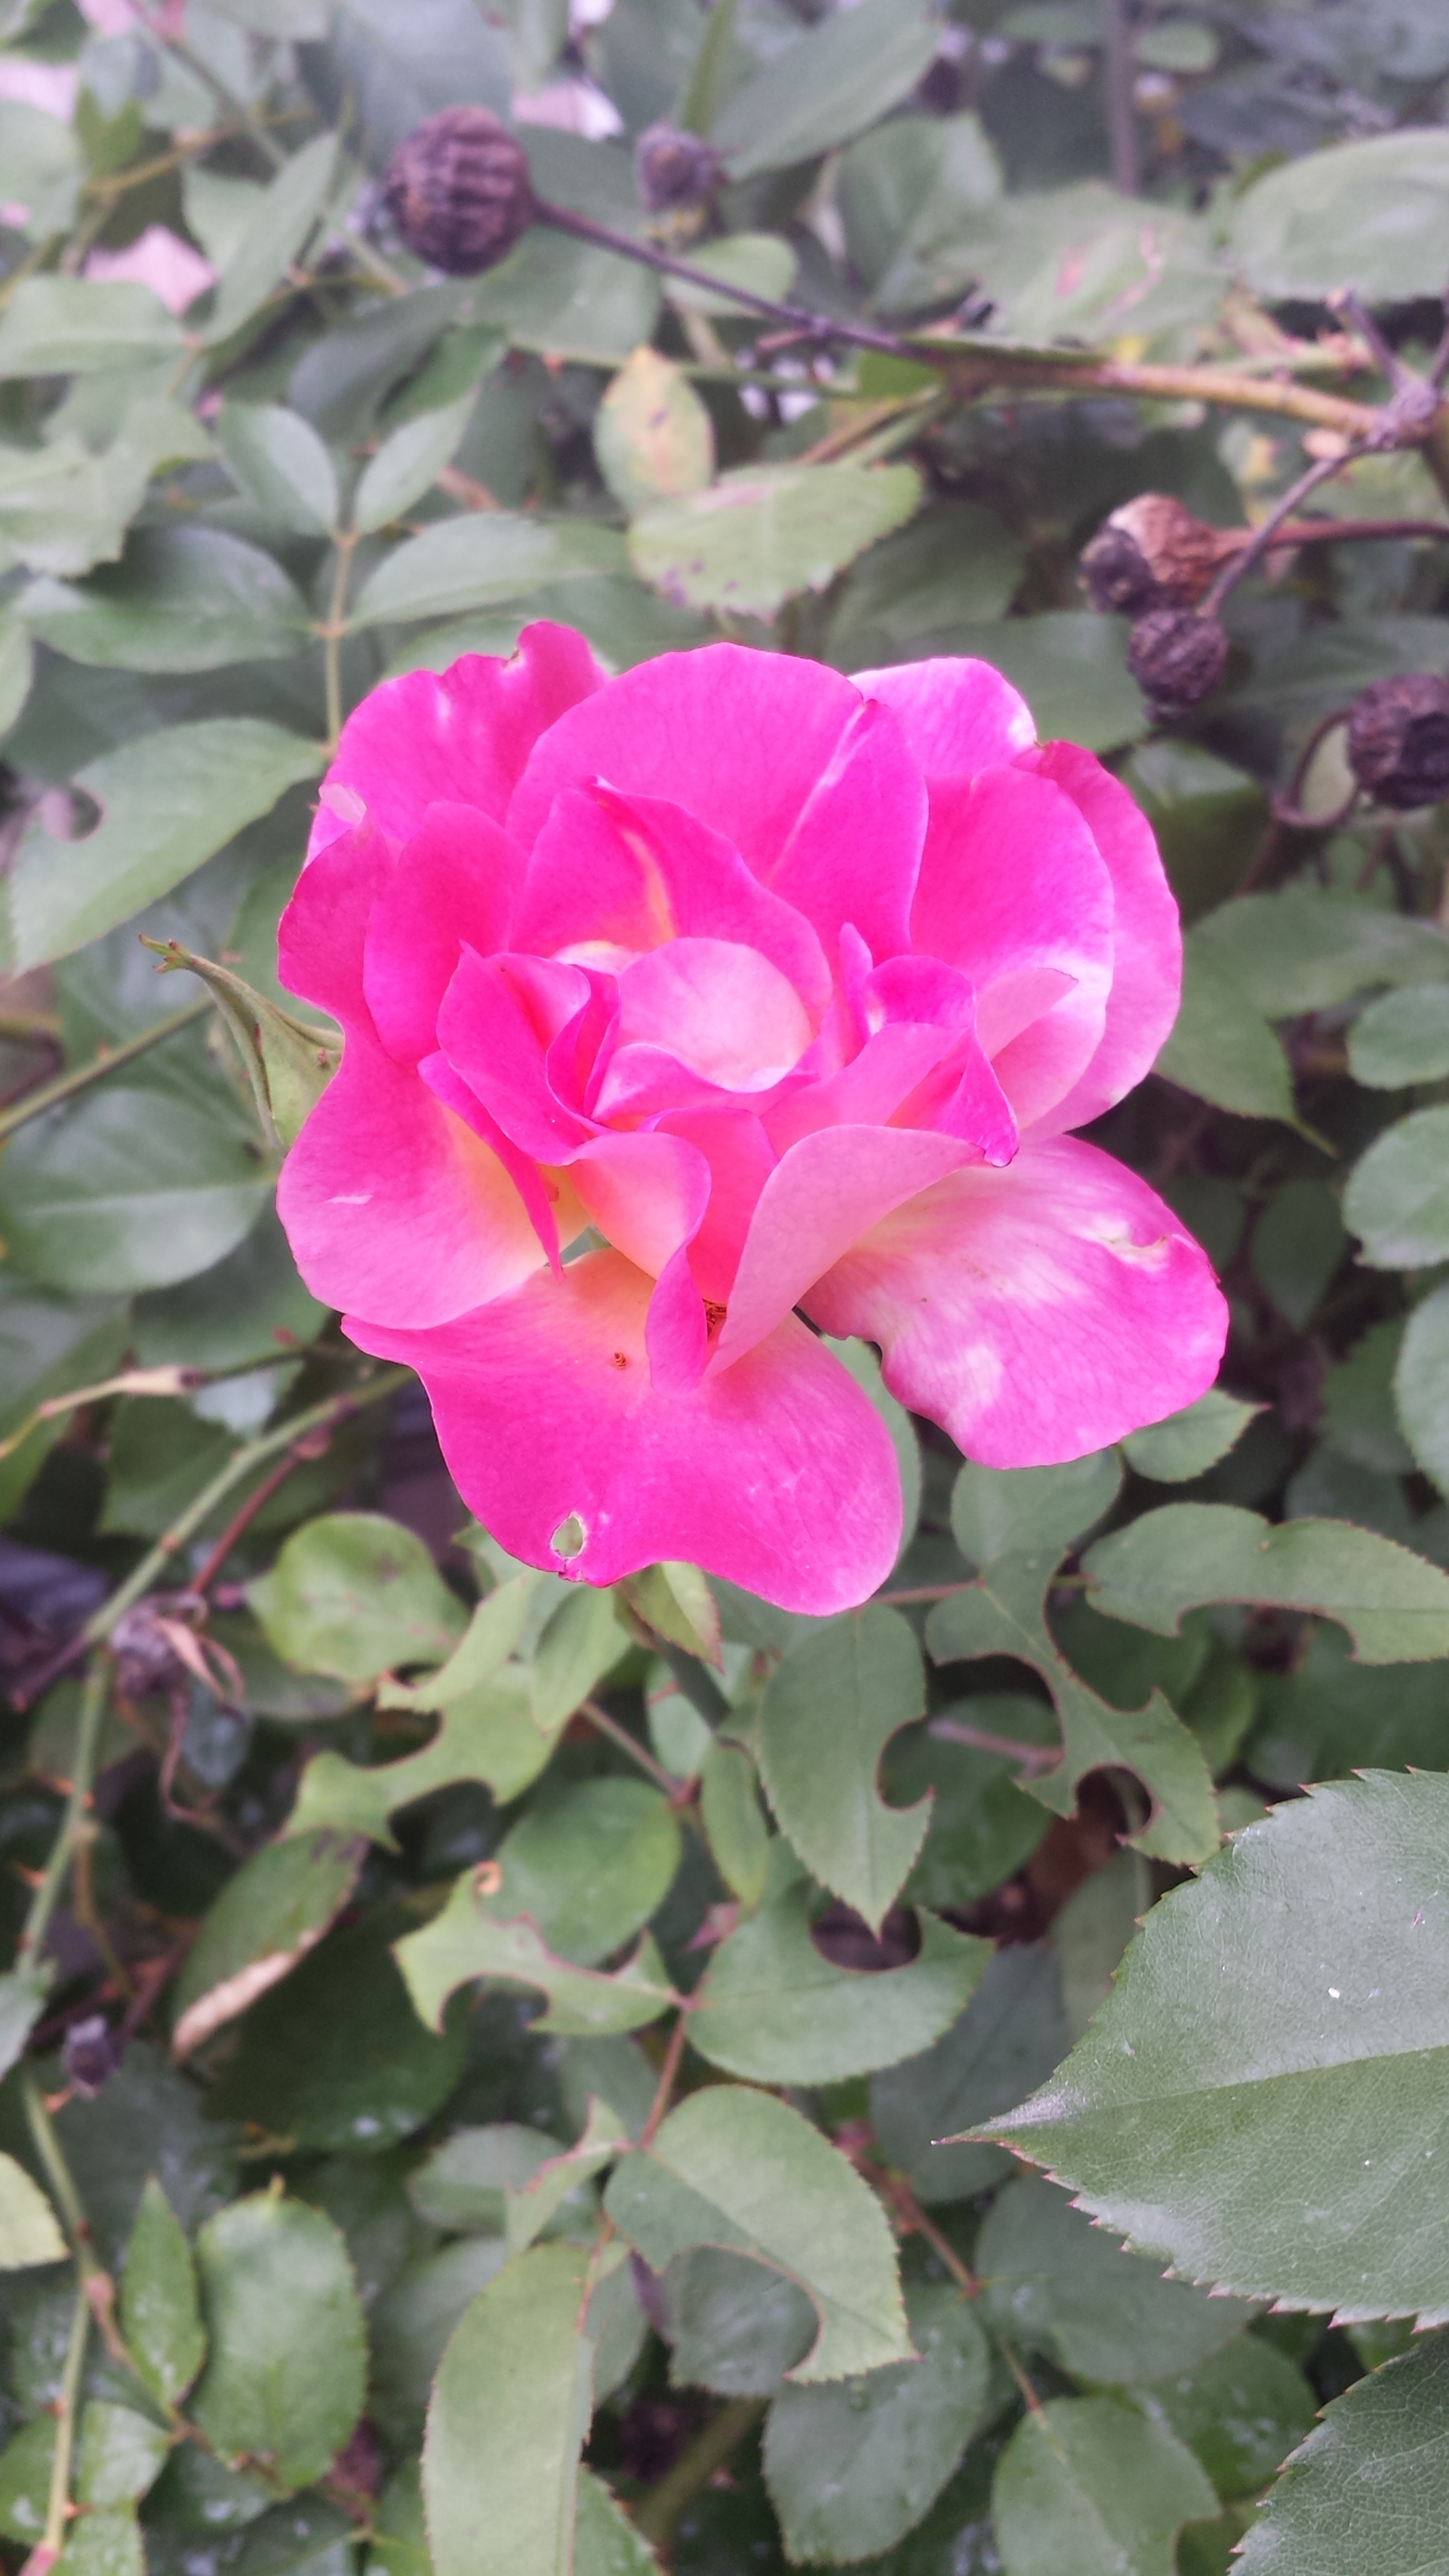 bright pink flower in the sun